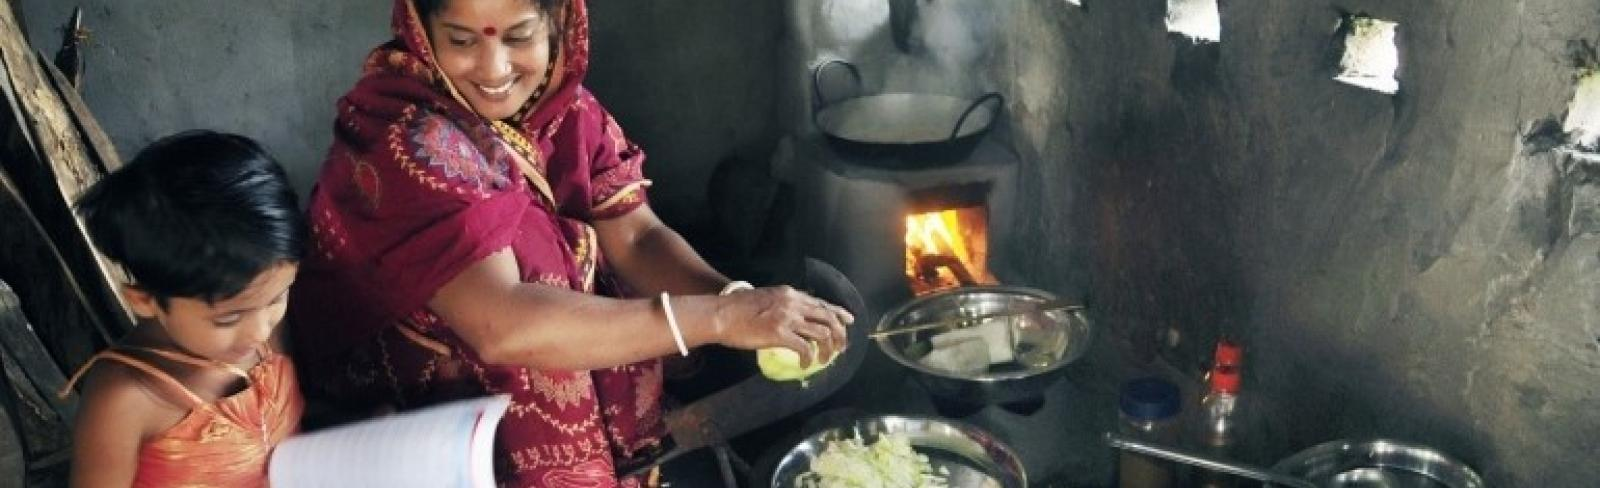 """Improved Cook Stoves are improving health and quality of life especially for women and children by drastically reducing air pollution and costs. """"My firewood usage has gone down so much. I used to buy firewood once in every two months, now I buy fuelwood once every five months. This has helped us save money."""" -Ms. Shefali Ghosh from Savar Village on the outskirts of Dhaka"""